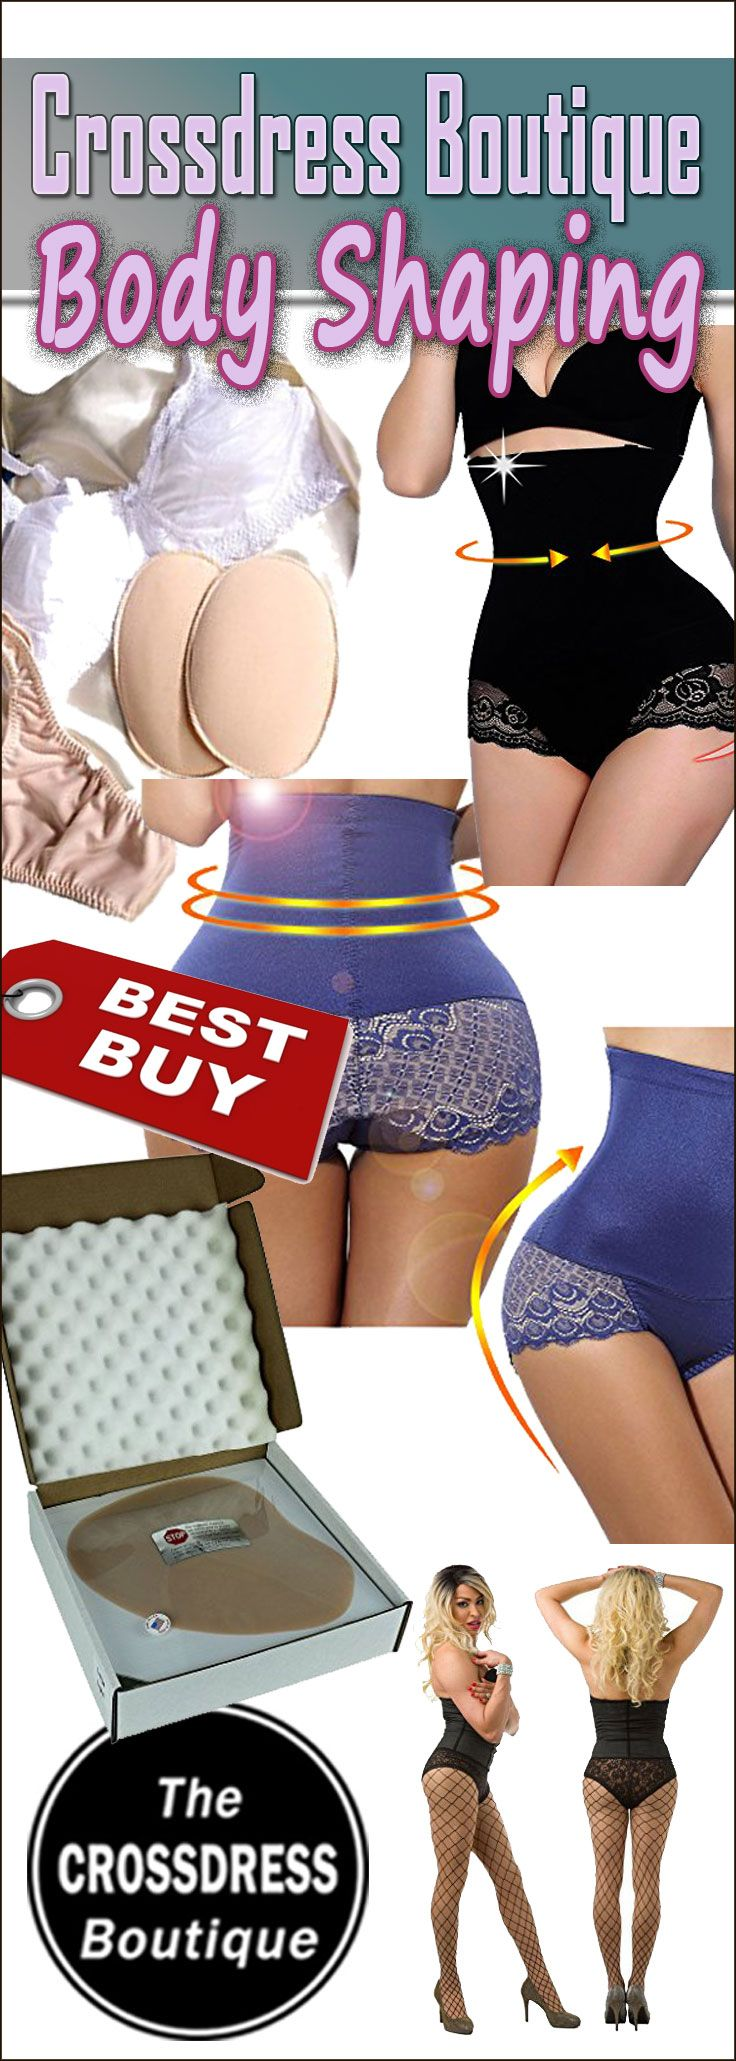 Crossdresser Body Shaping Garments, See More: http://www.crossdressboutique.com/tgirl/lingerie-bras-gaffs/body-shaping/